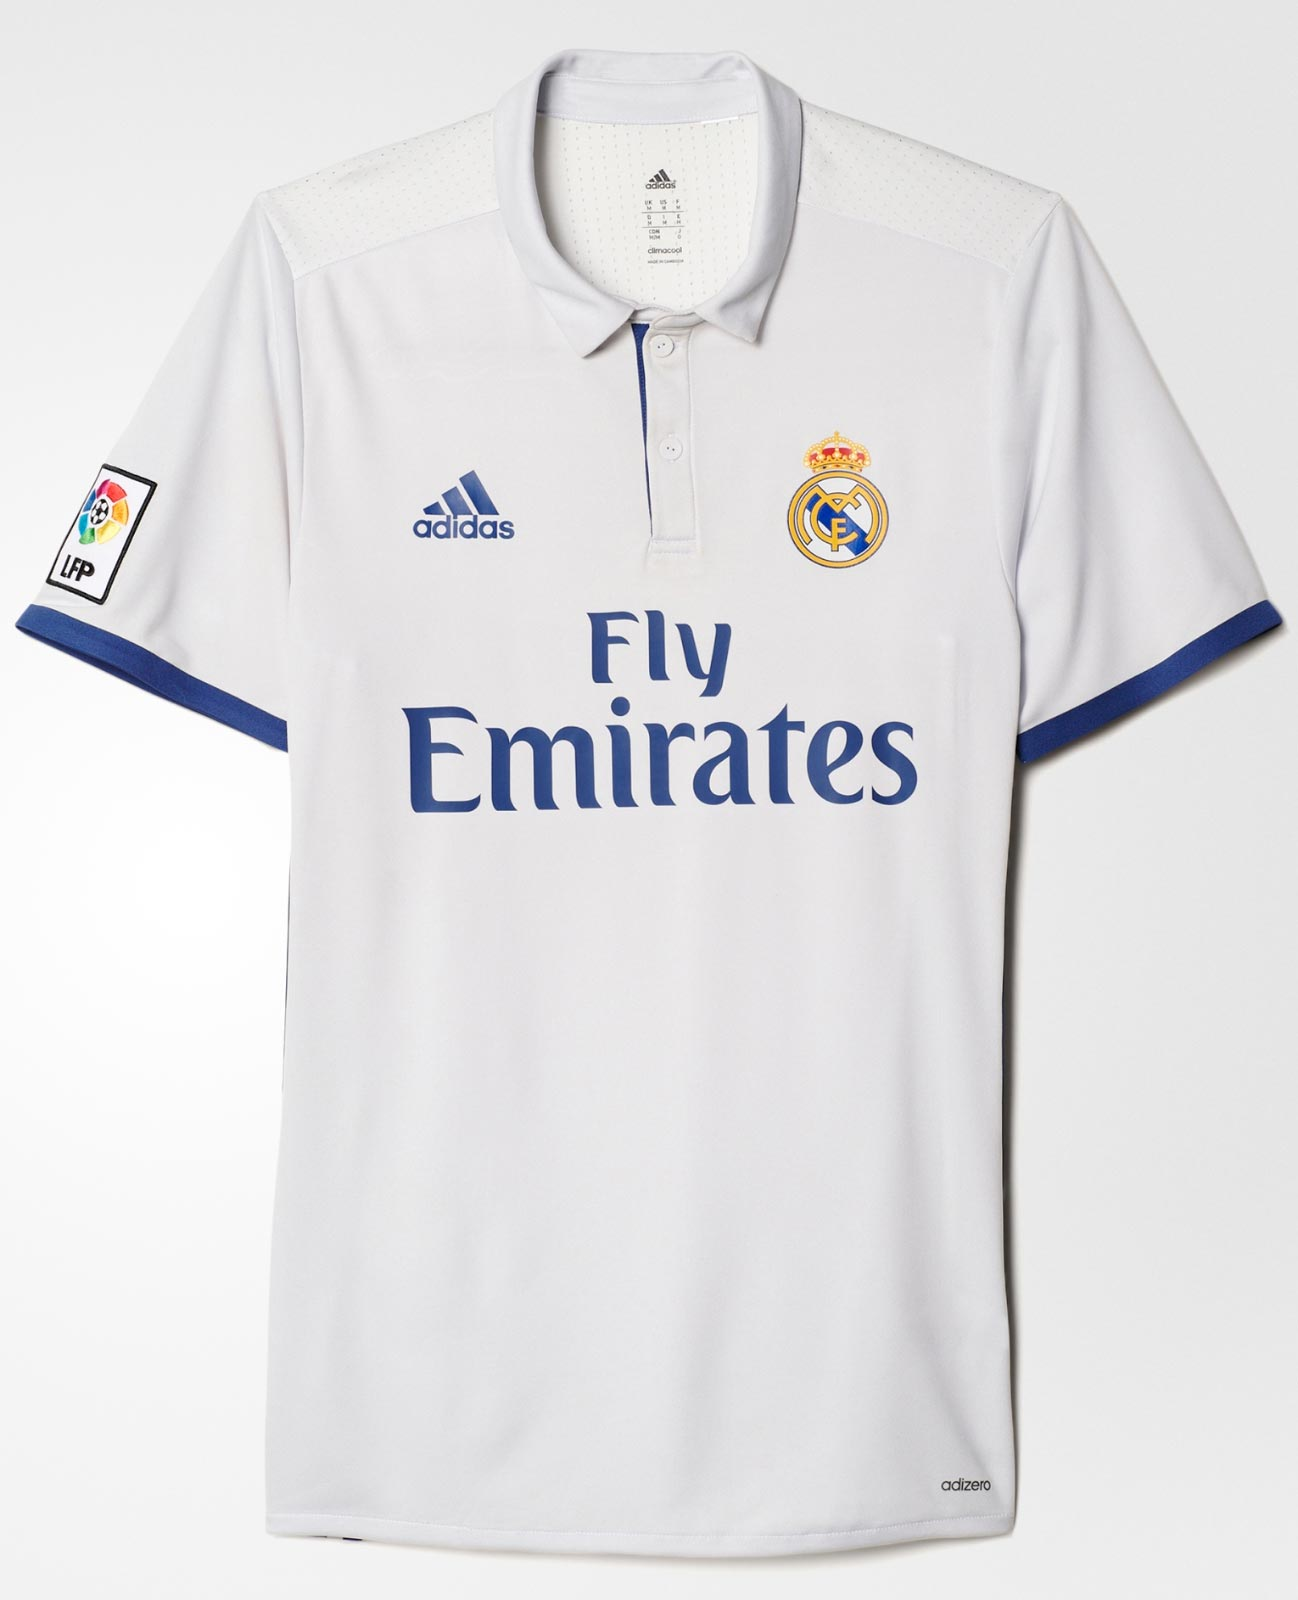 Real Madrid 2016 17 Home Kit Released 68a8df7b1